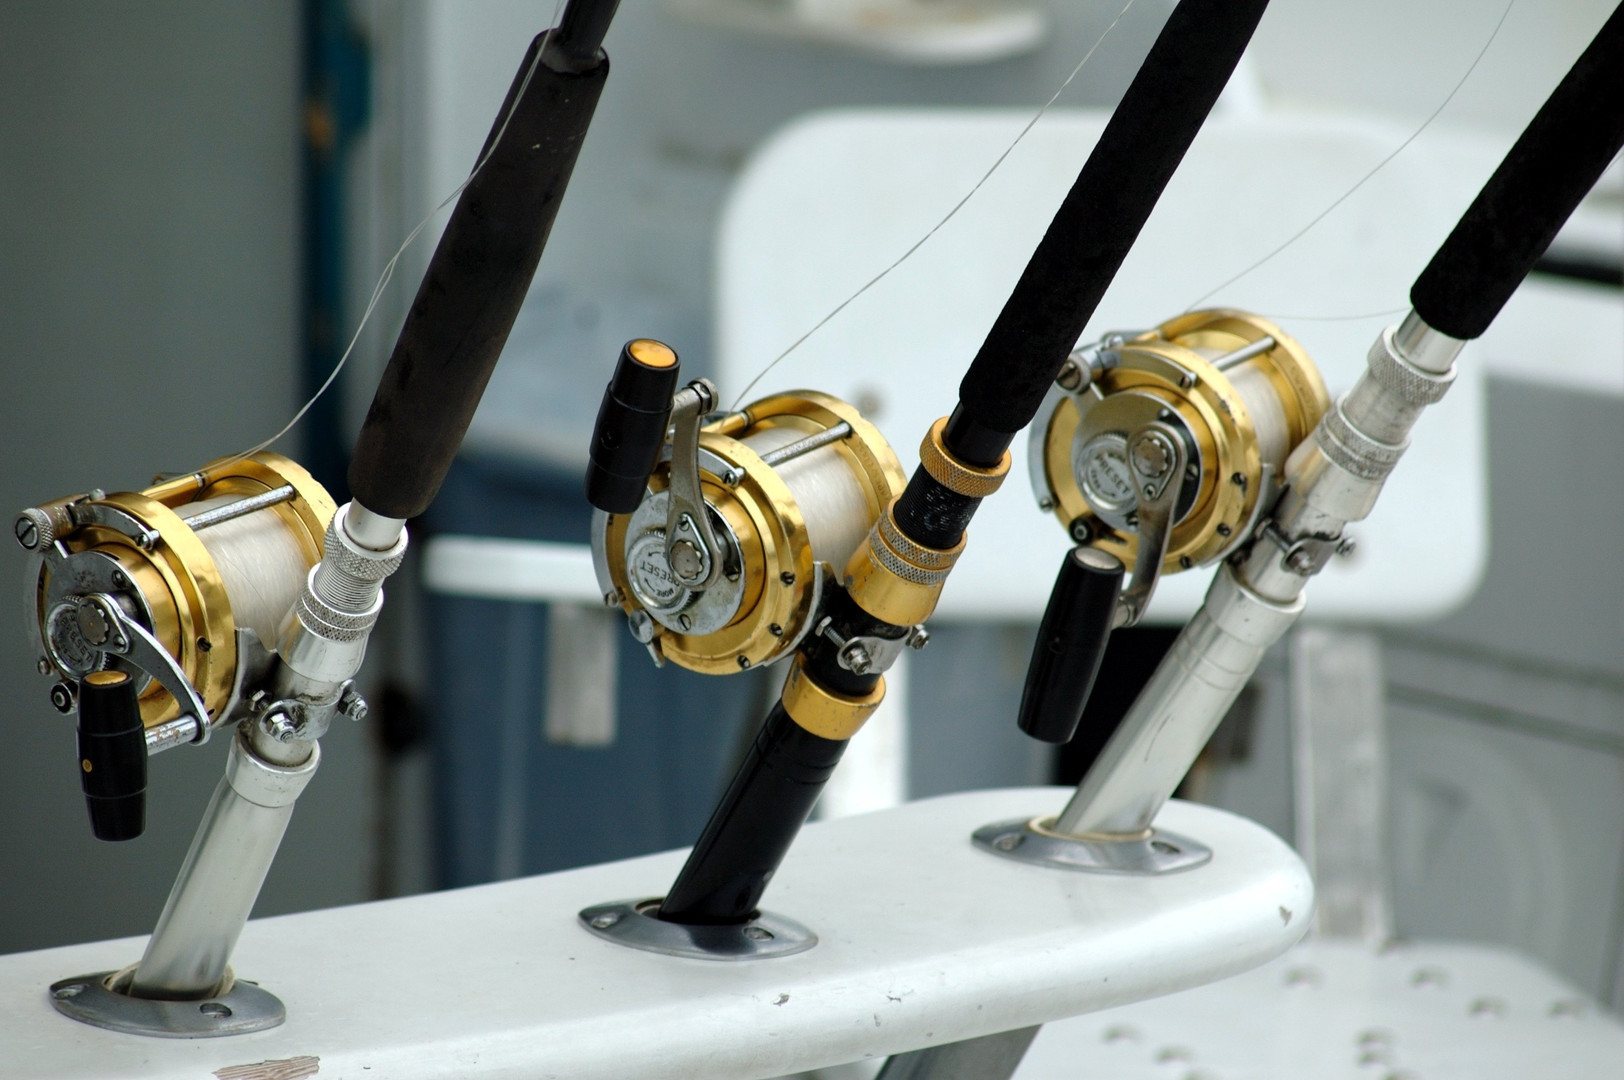 3-lined-brass-and-black-fishing-reel-209